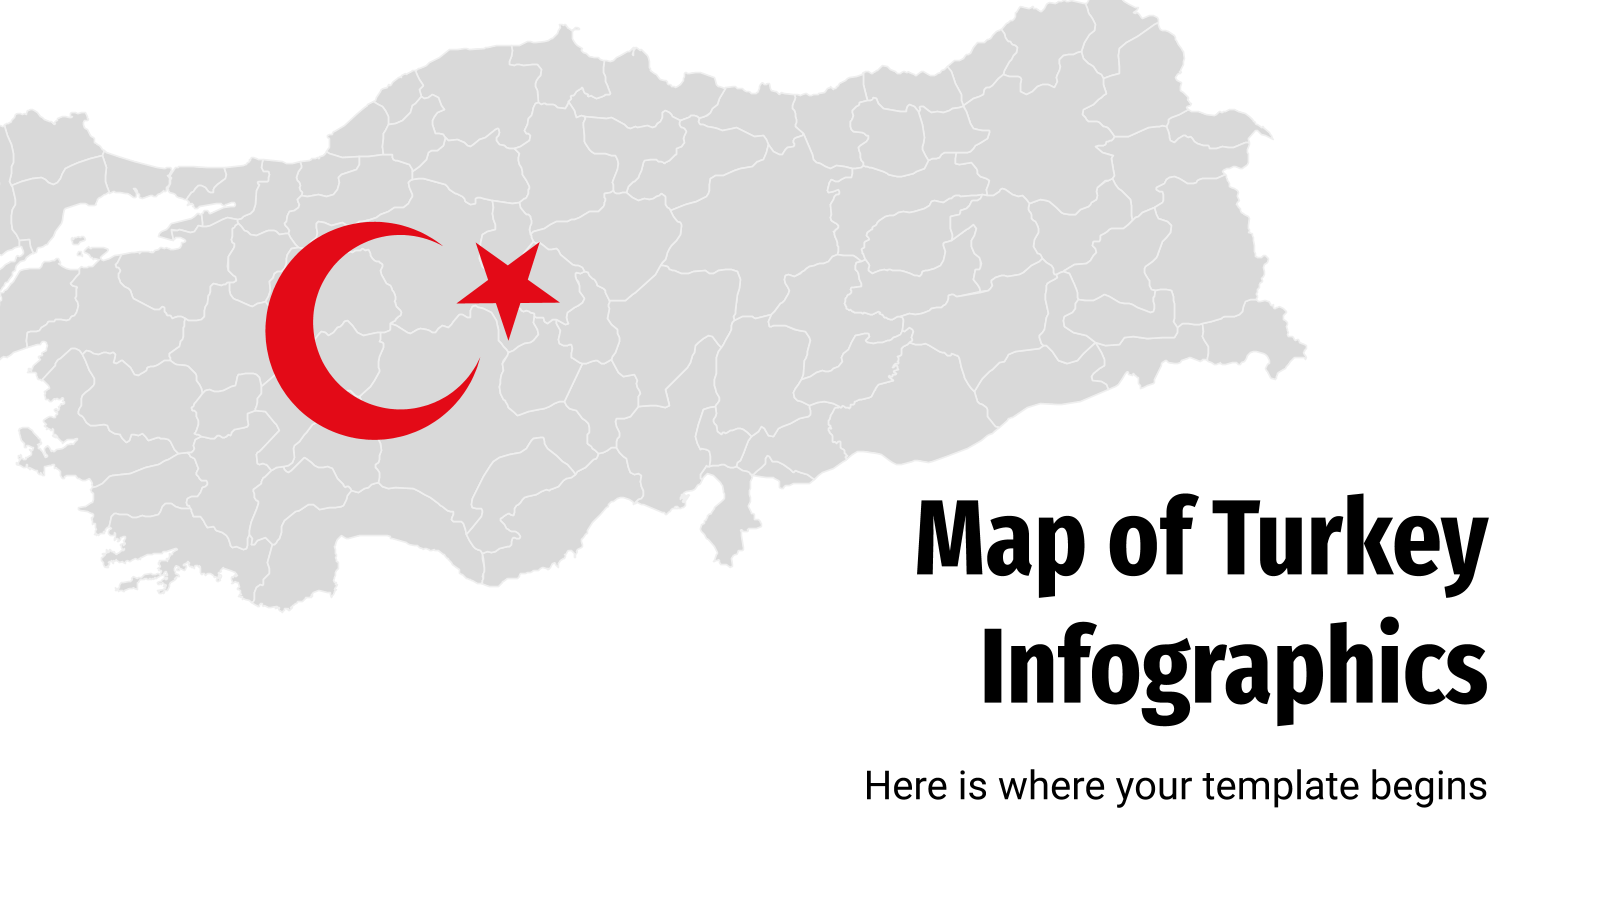 Map of Turkey Infographics presentation template